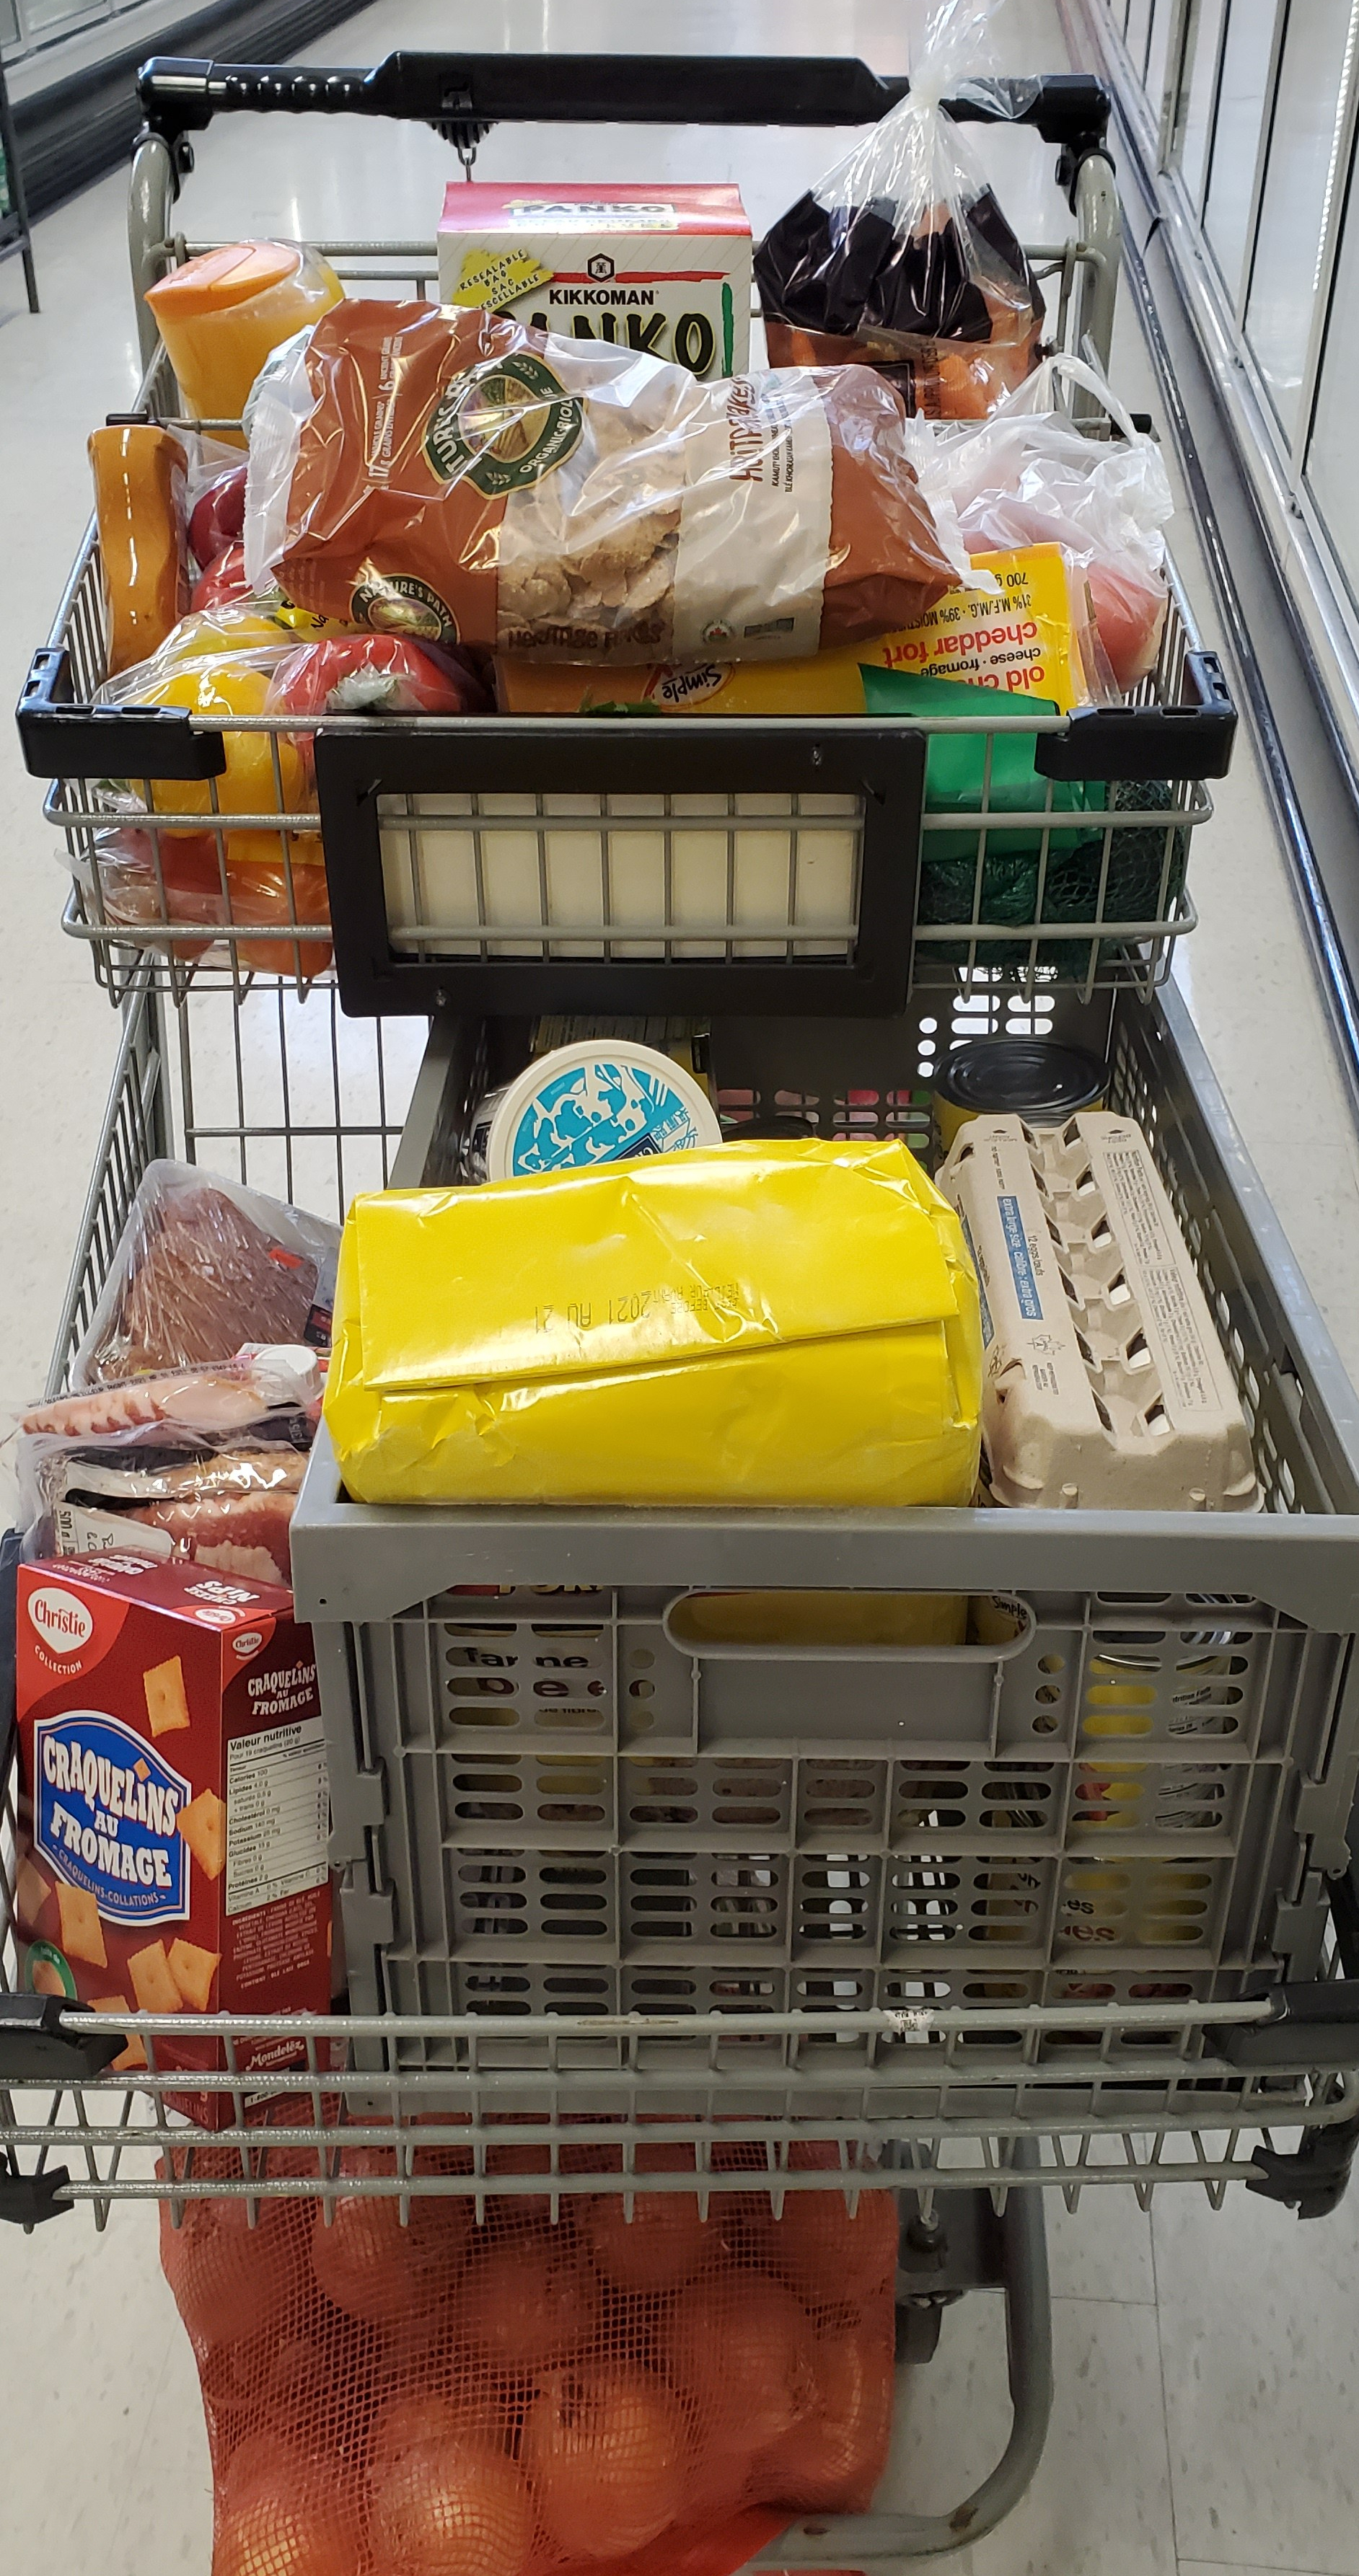 A two tier cart full of various items, including onions on the very bottom above the wheels